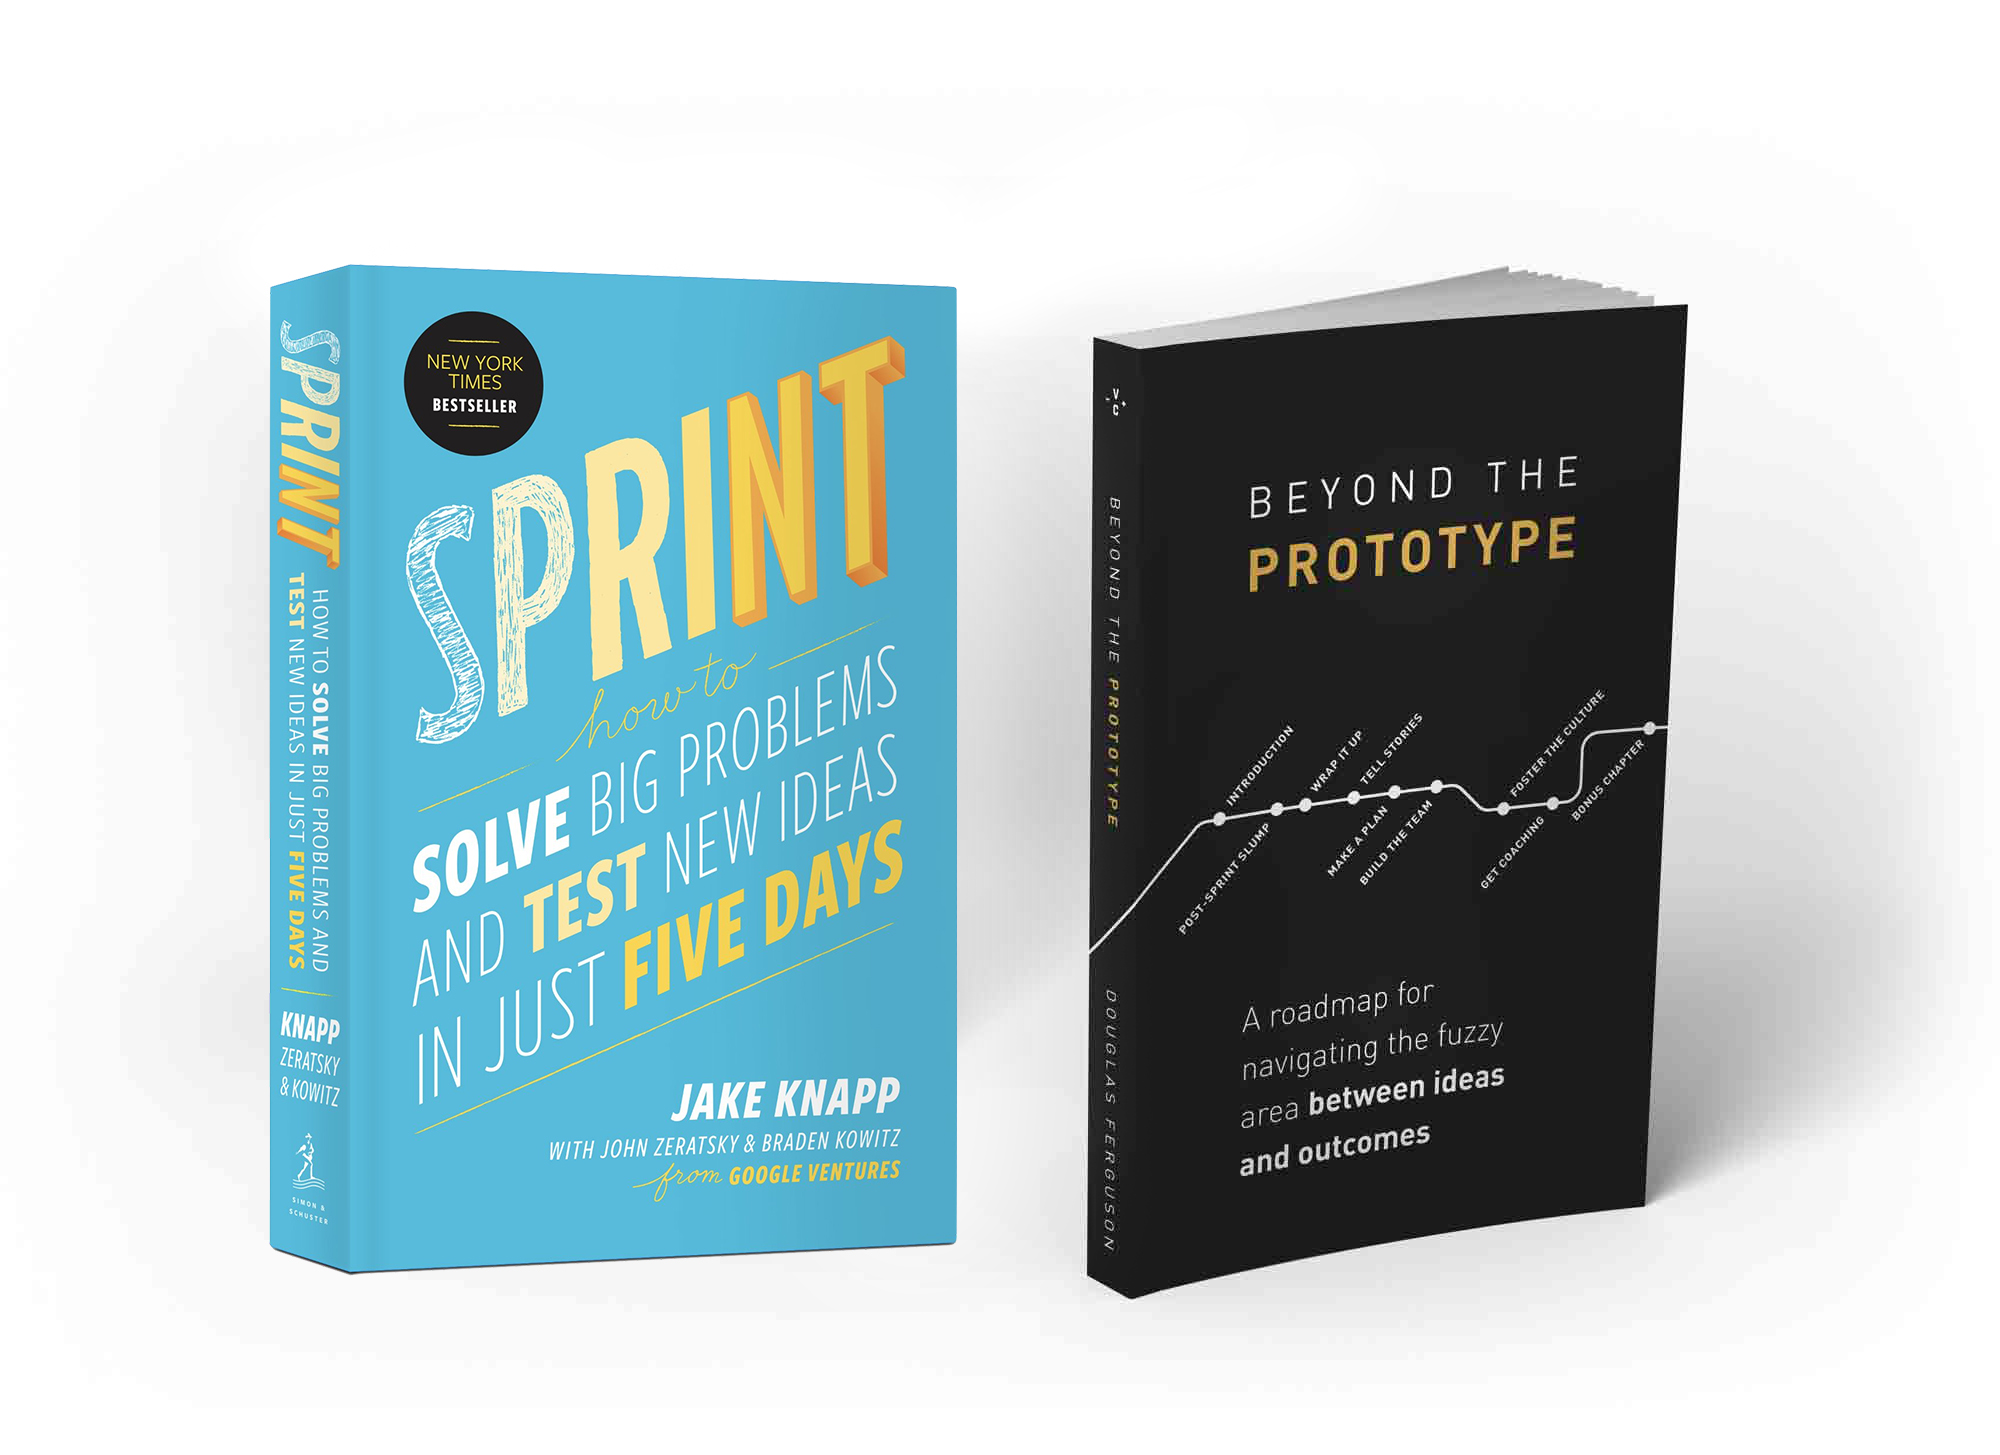 Sprint and Beyond the Prototype